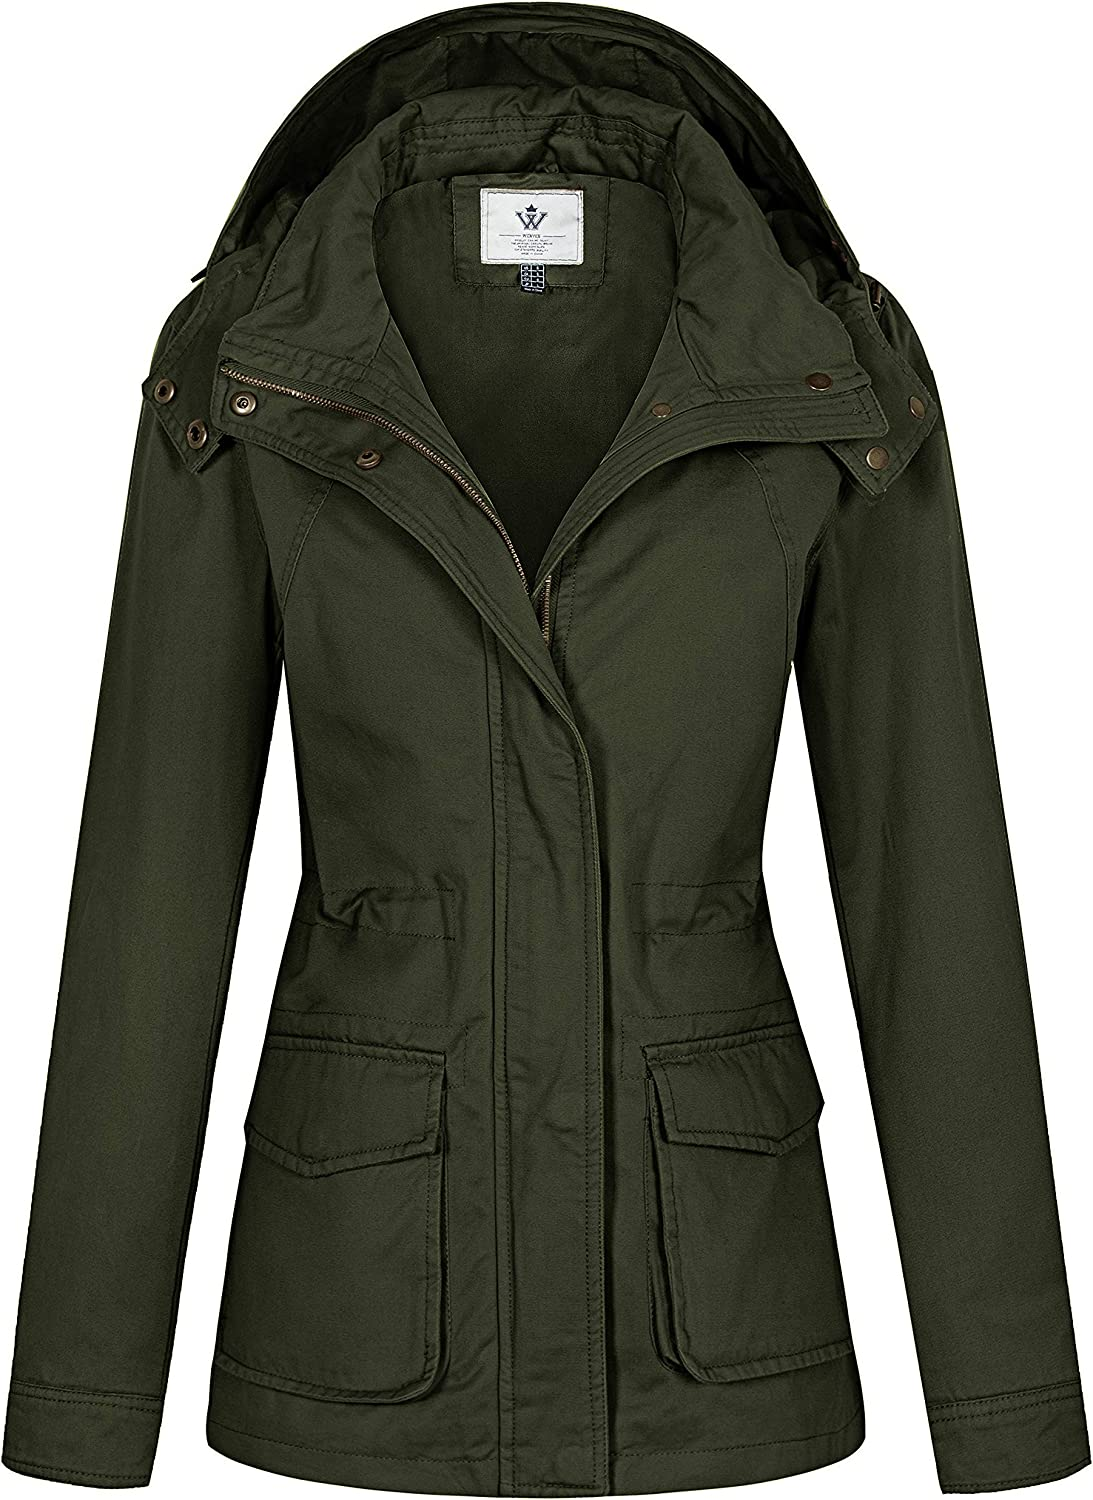 WenVen Women's Utility Military Anorak Jacket Hooded Lightweight Cotton Casual Coat